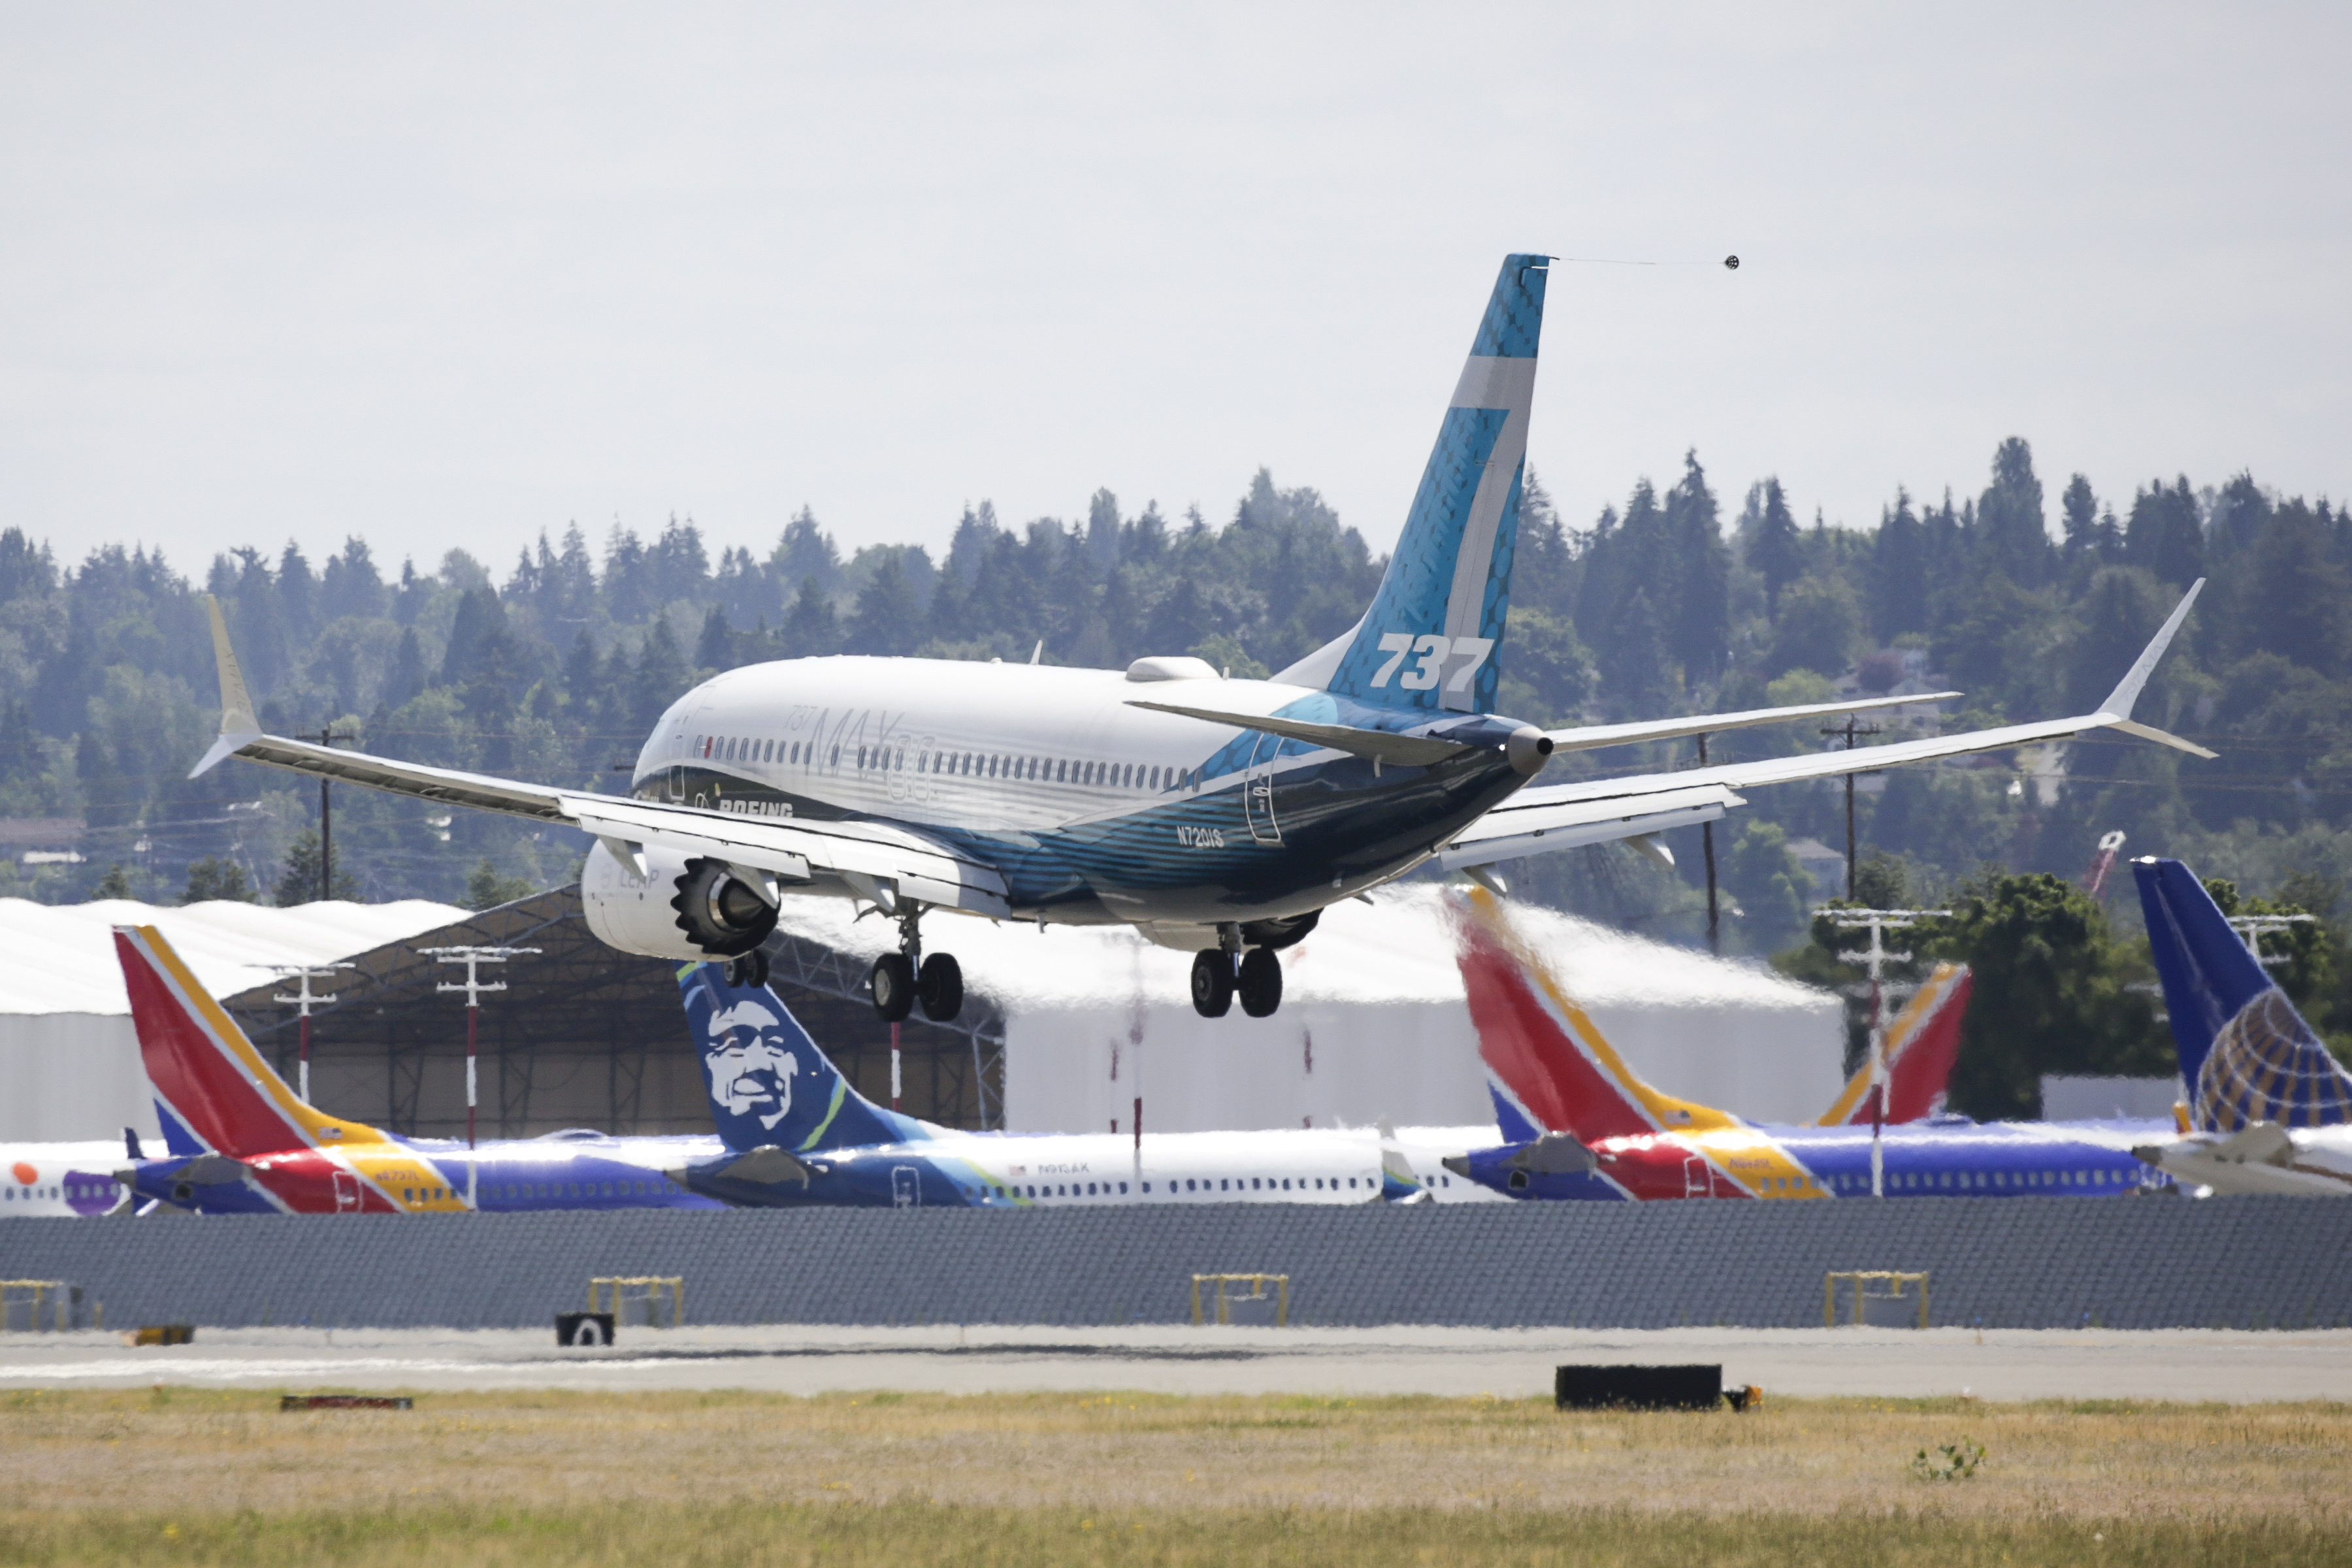 A Boeing 737 MAX jet lands near grounded 737 MAX planes following Federal Aviation Administration (FAA) test flight at Boeing Field in Seattle, Washington on June 29, 2020. (JASON REDMOND/AFP via Getty Images)